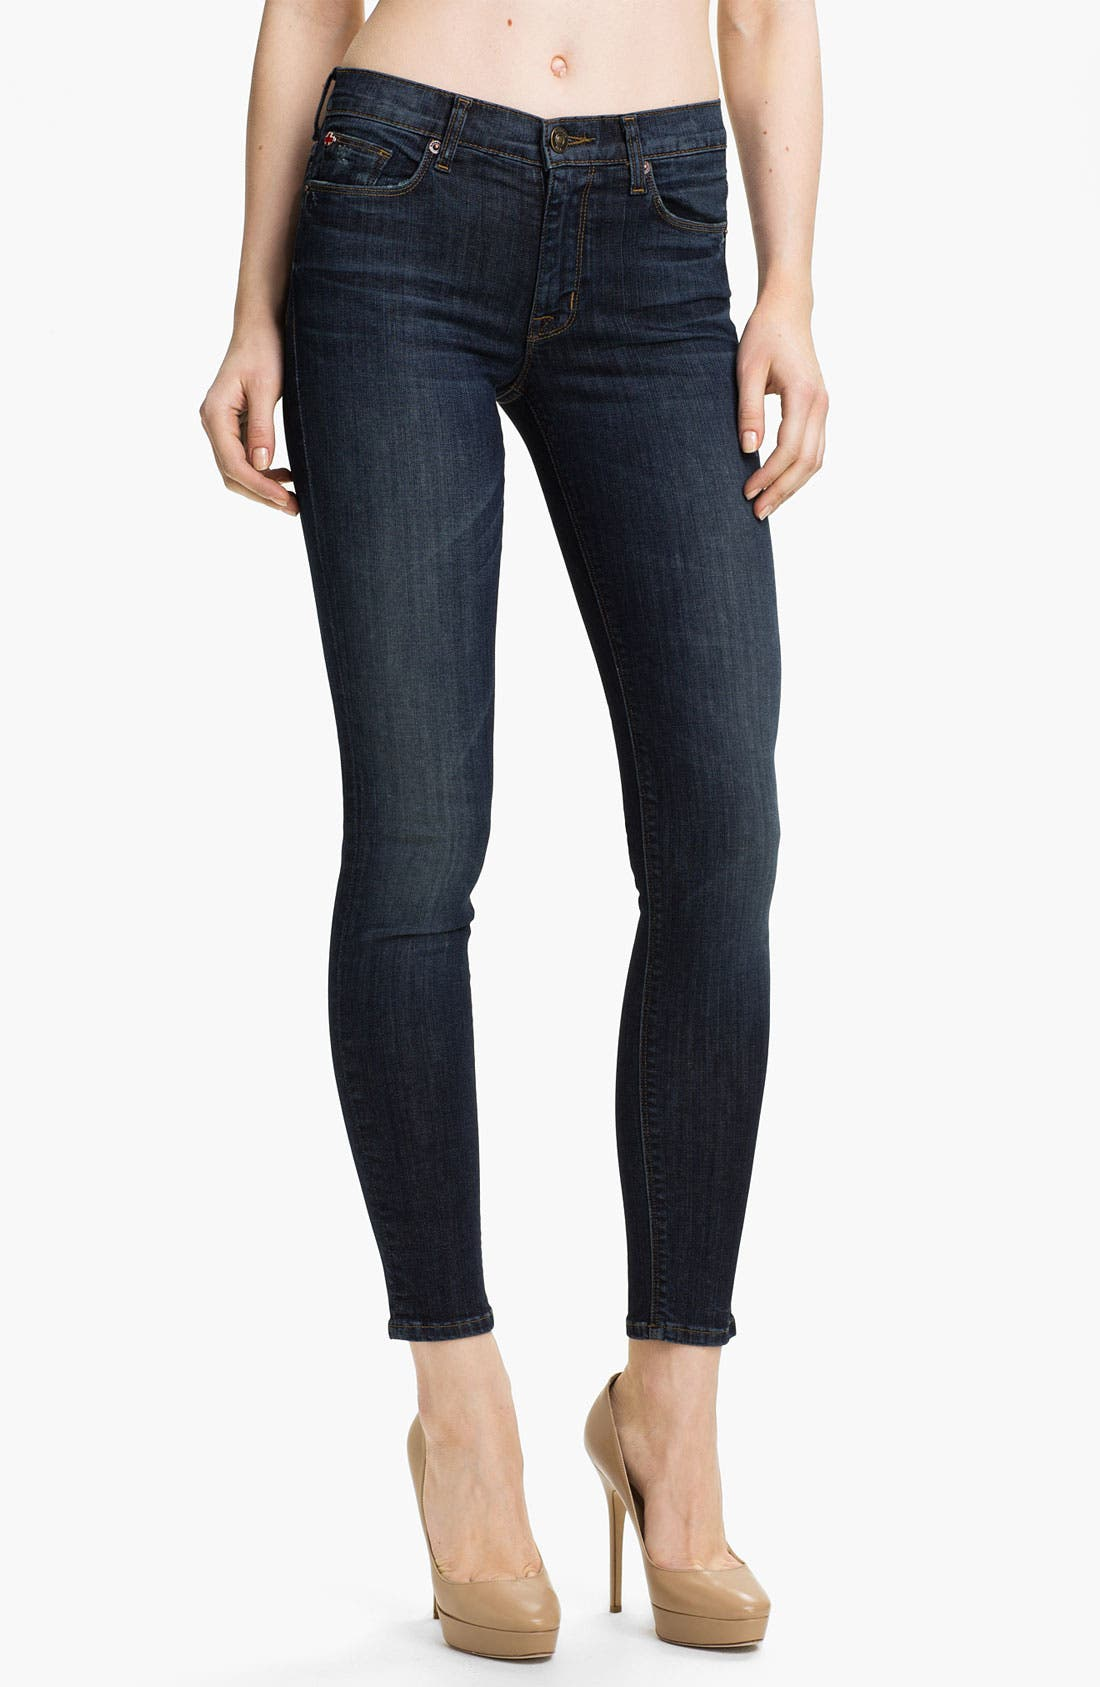 Main Image - Hudson Jeans 'Nico' Mid Rise Skinny Jeans (Hoxton)